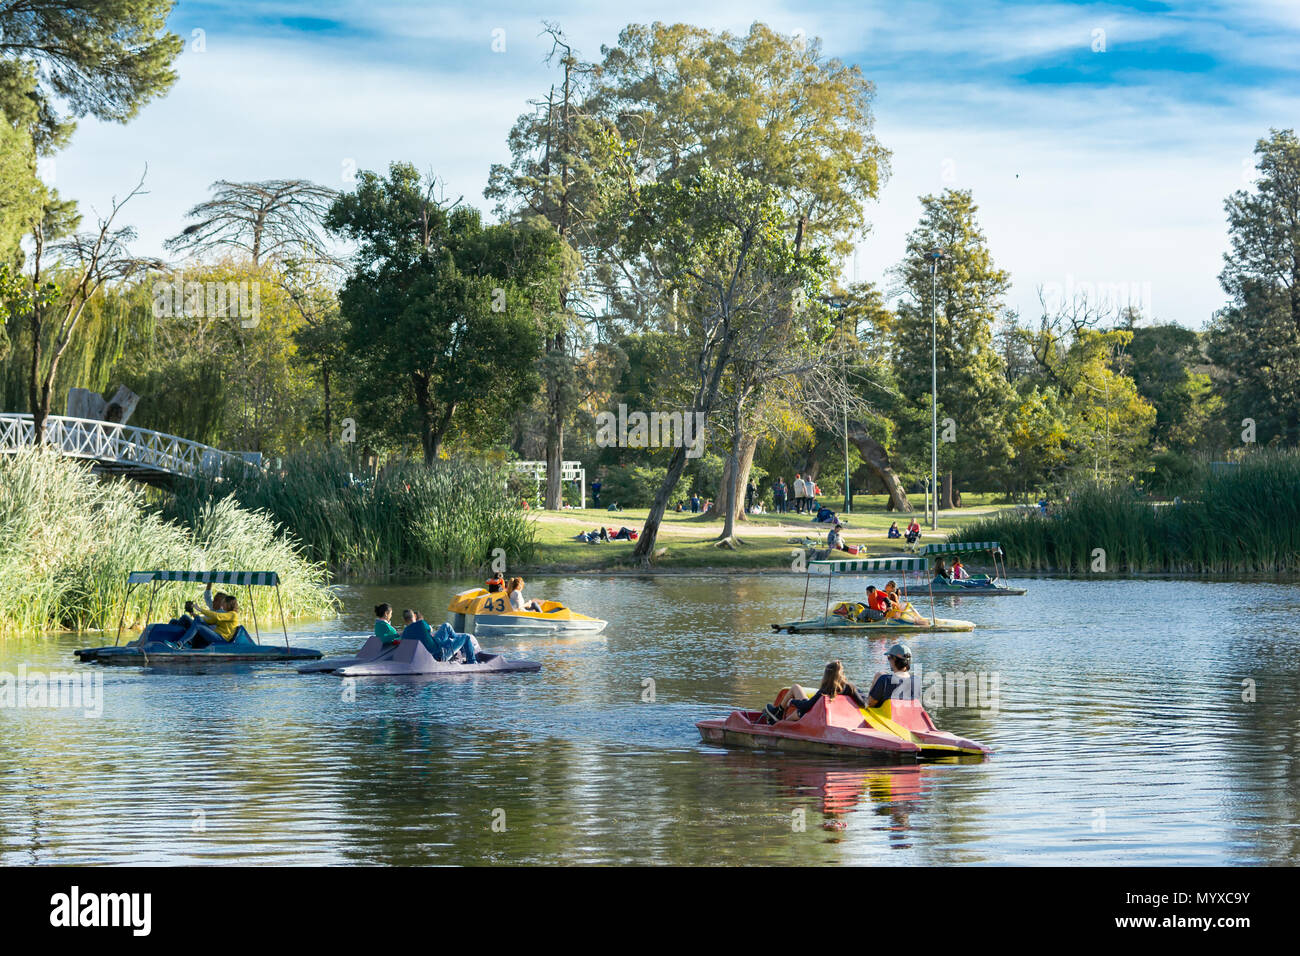 A Lake in a urban park. There are people using pedal boats on their weekend. It is a sunny day. - Stock Image